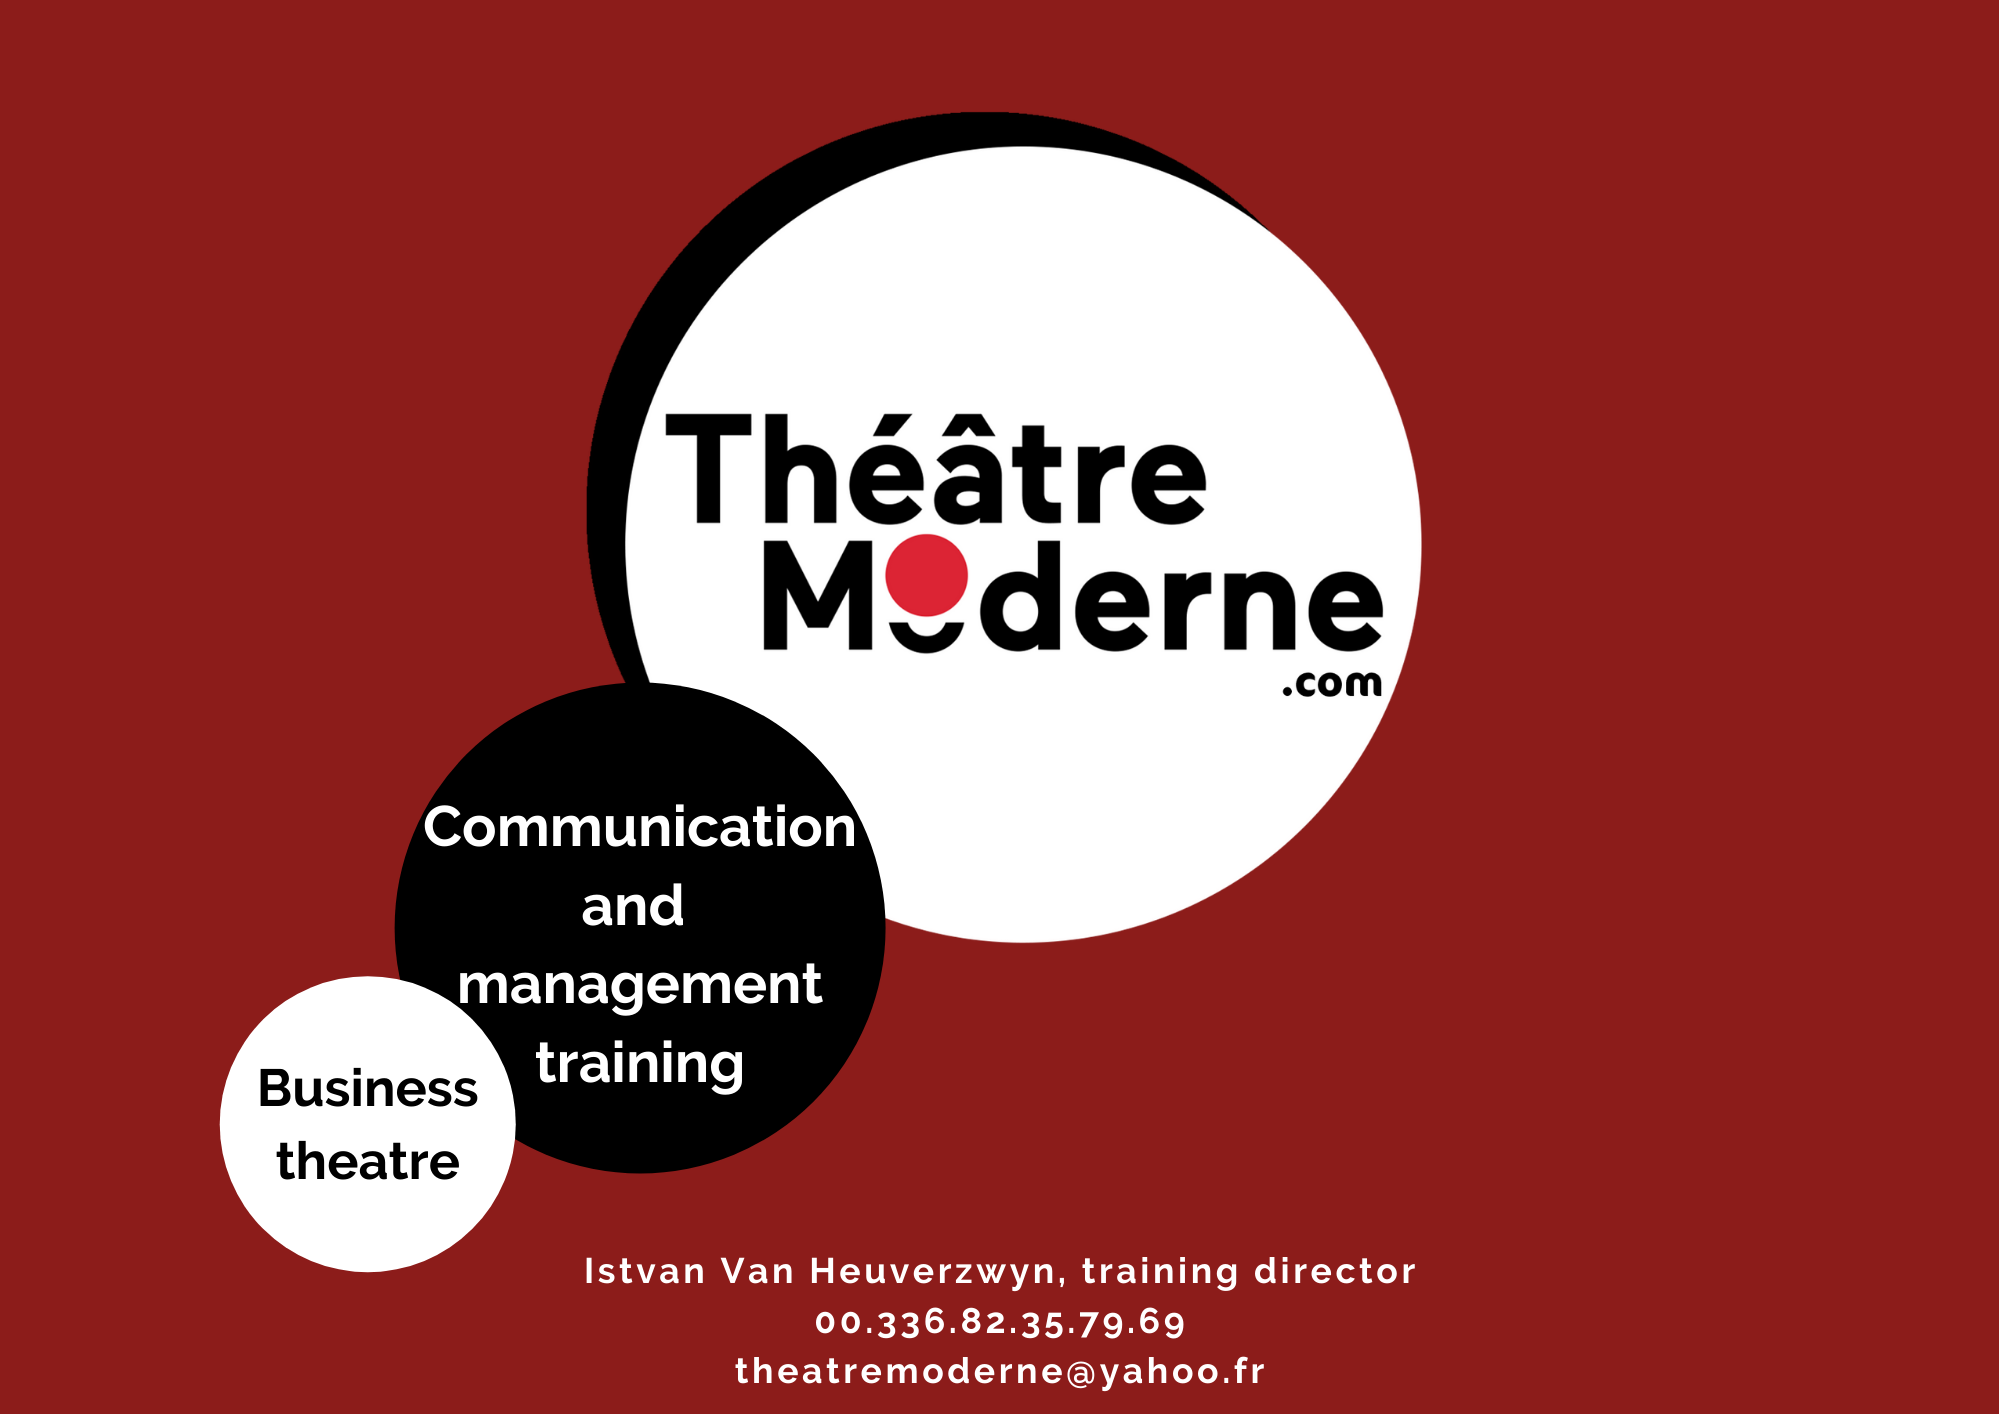 1 - Registration, quote, communication and management training